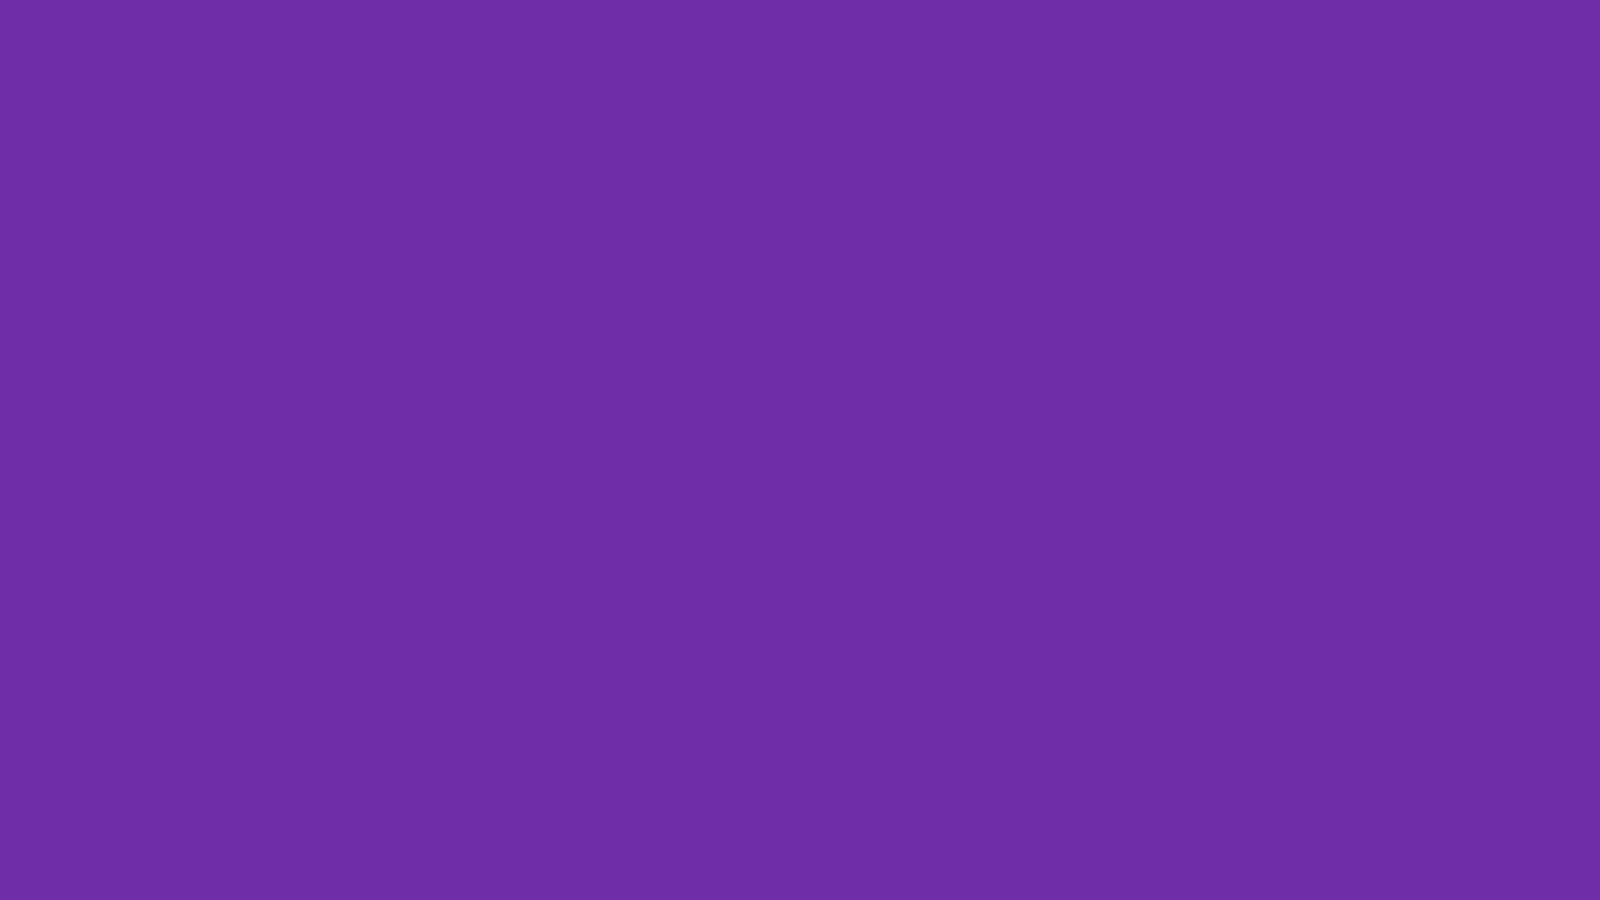 1600x900 Grape Solid Color Background